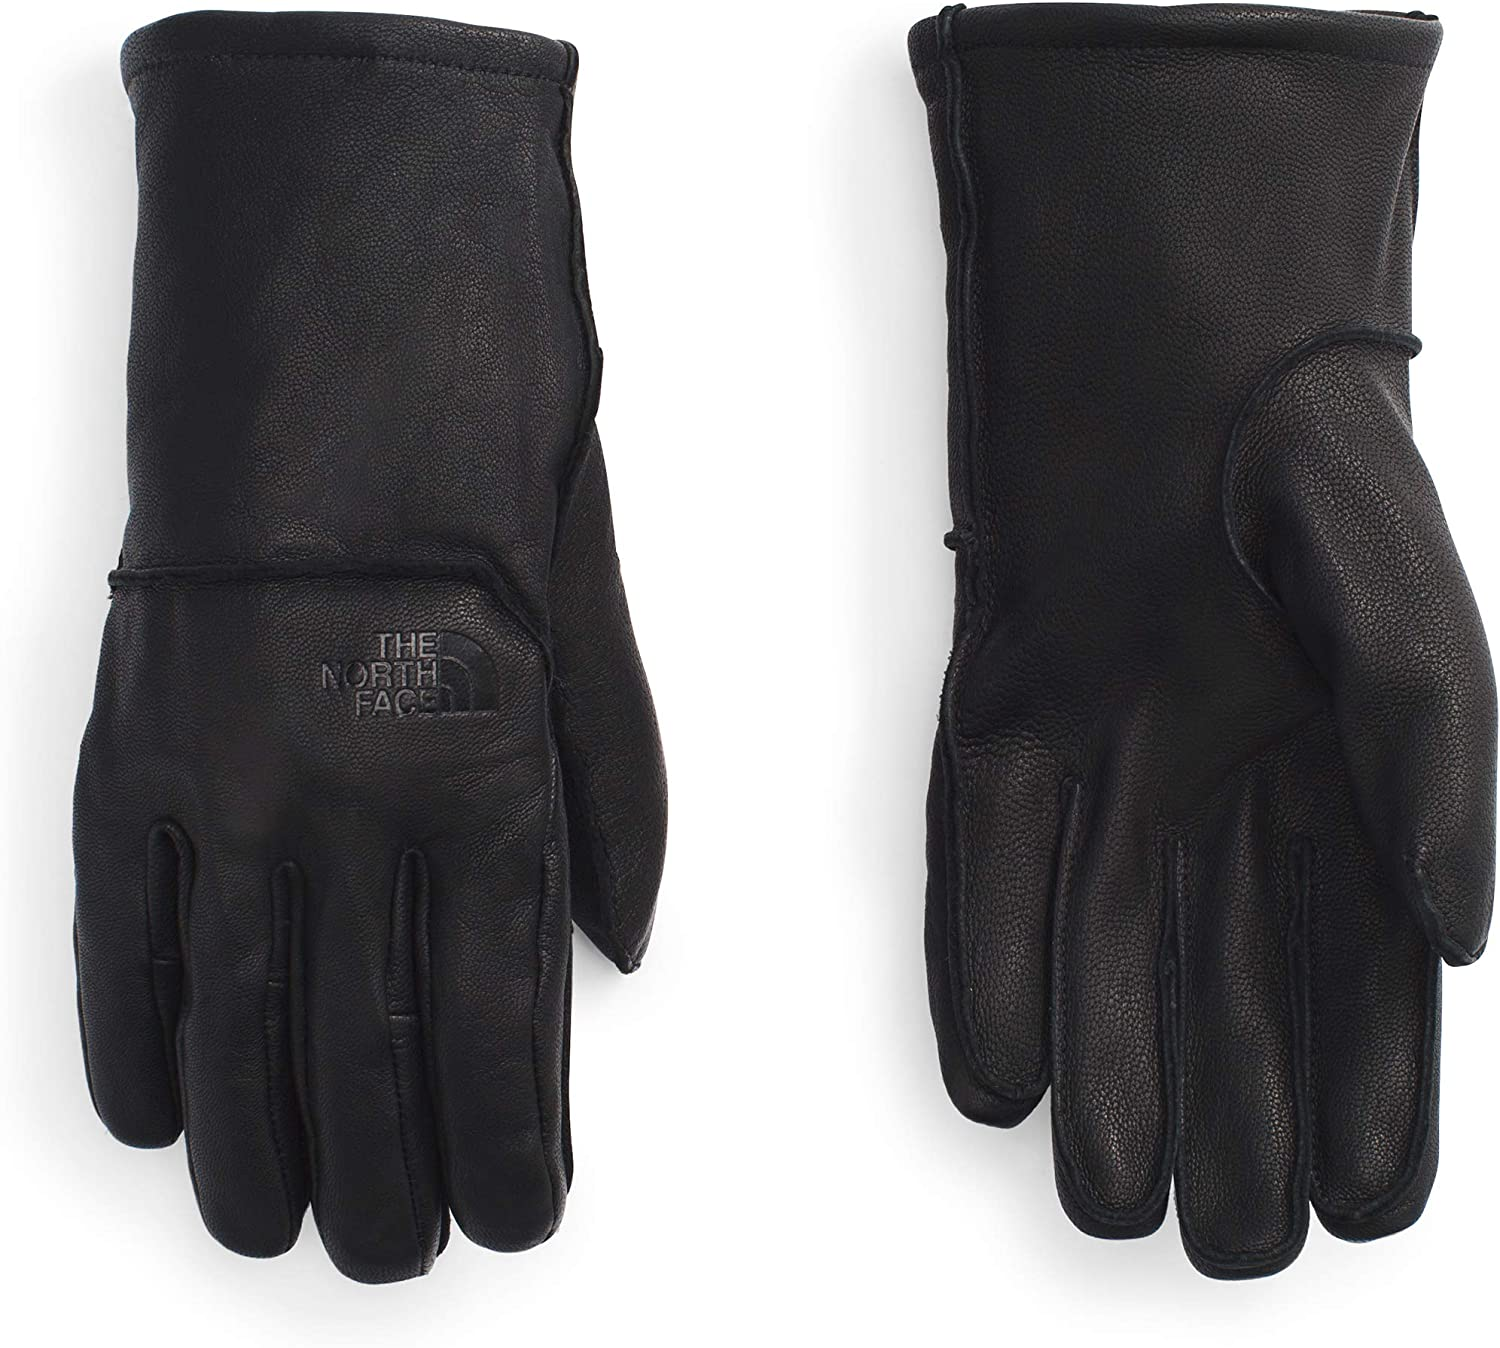 The North Face No-Frills Workhorse Glove